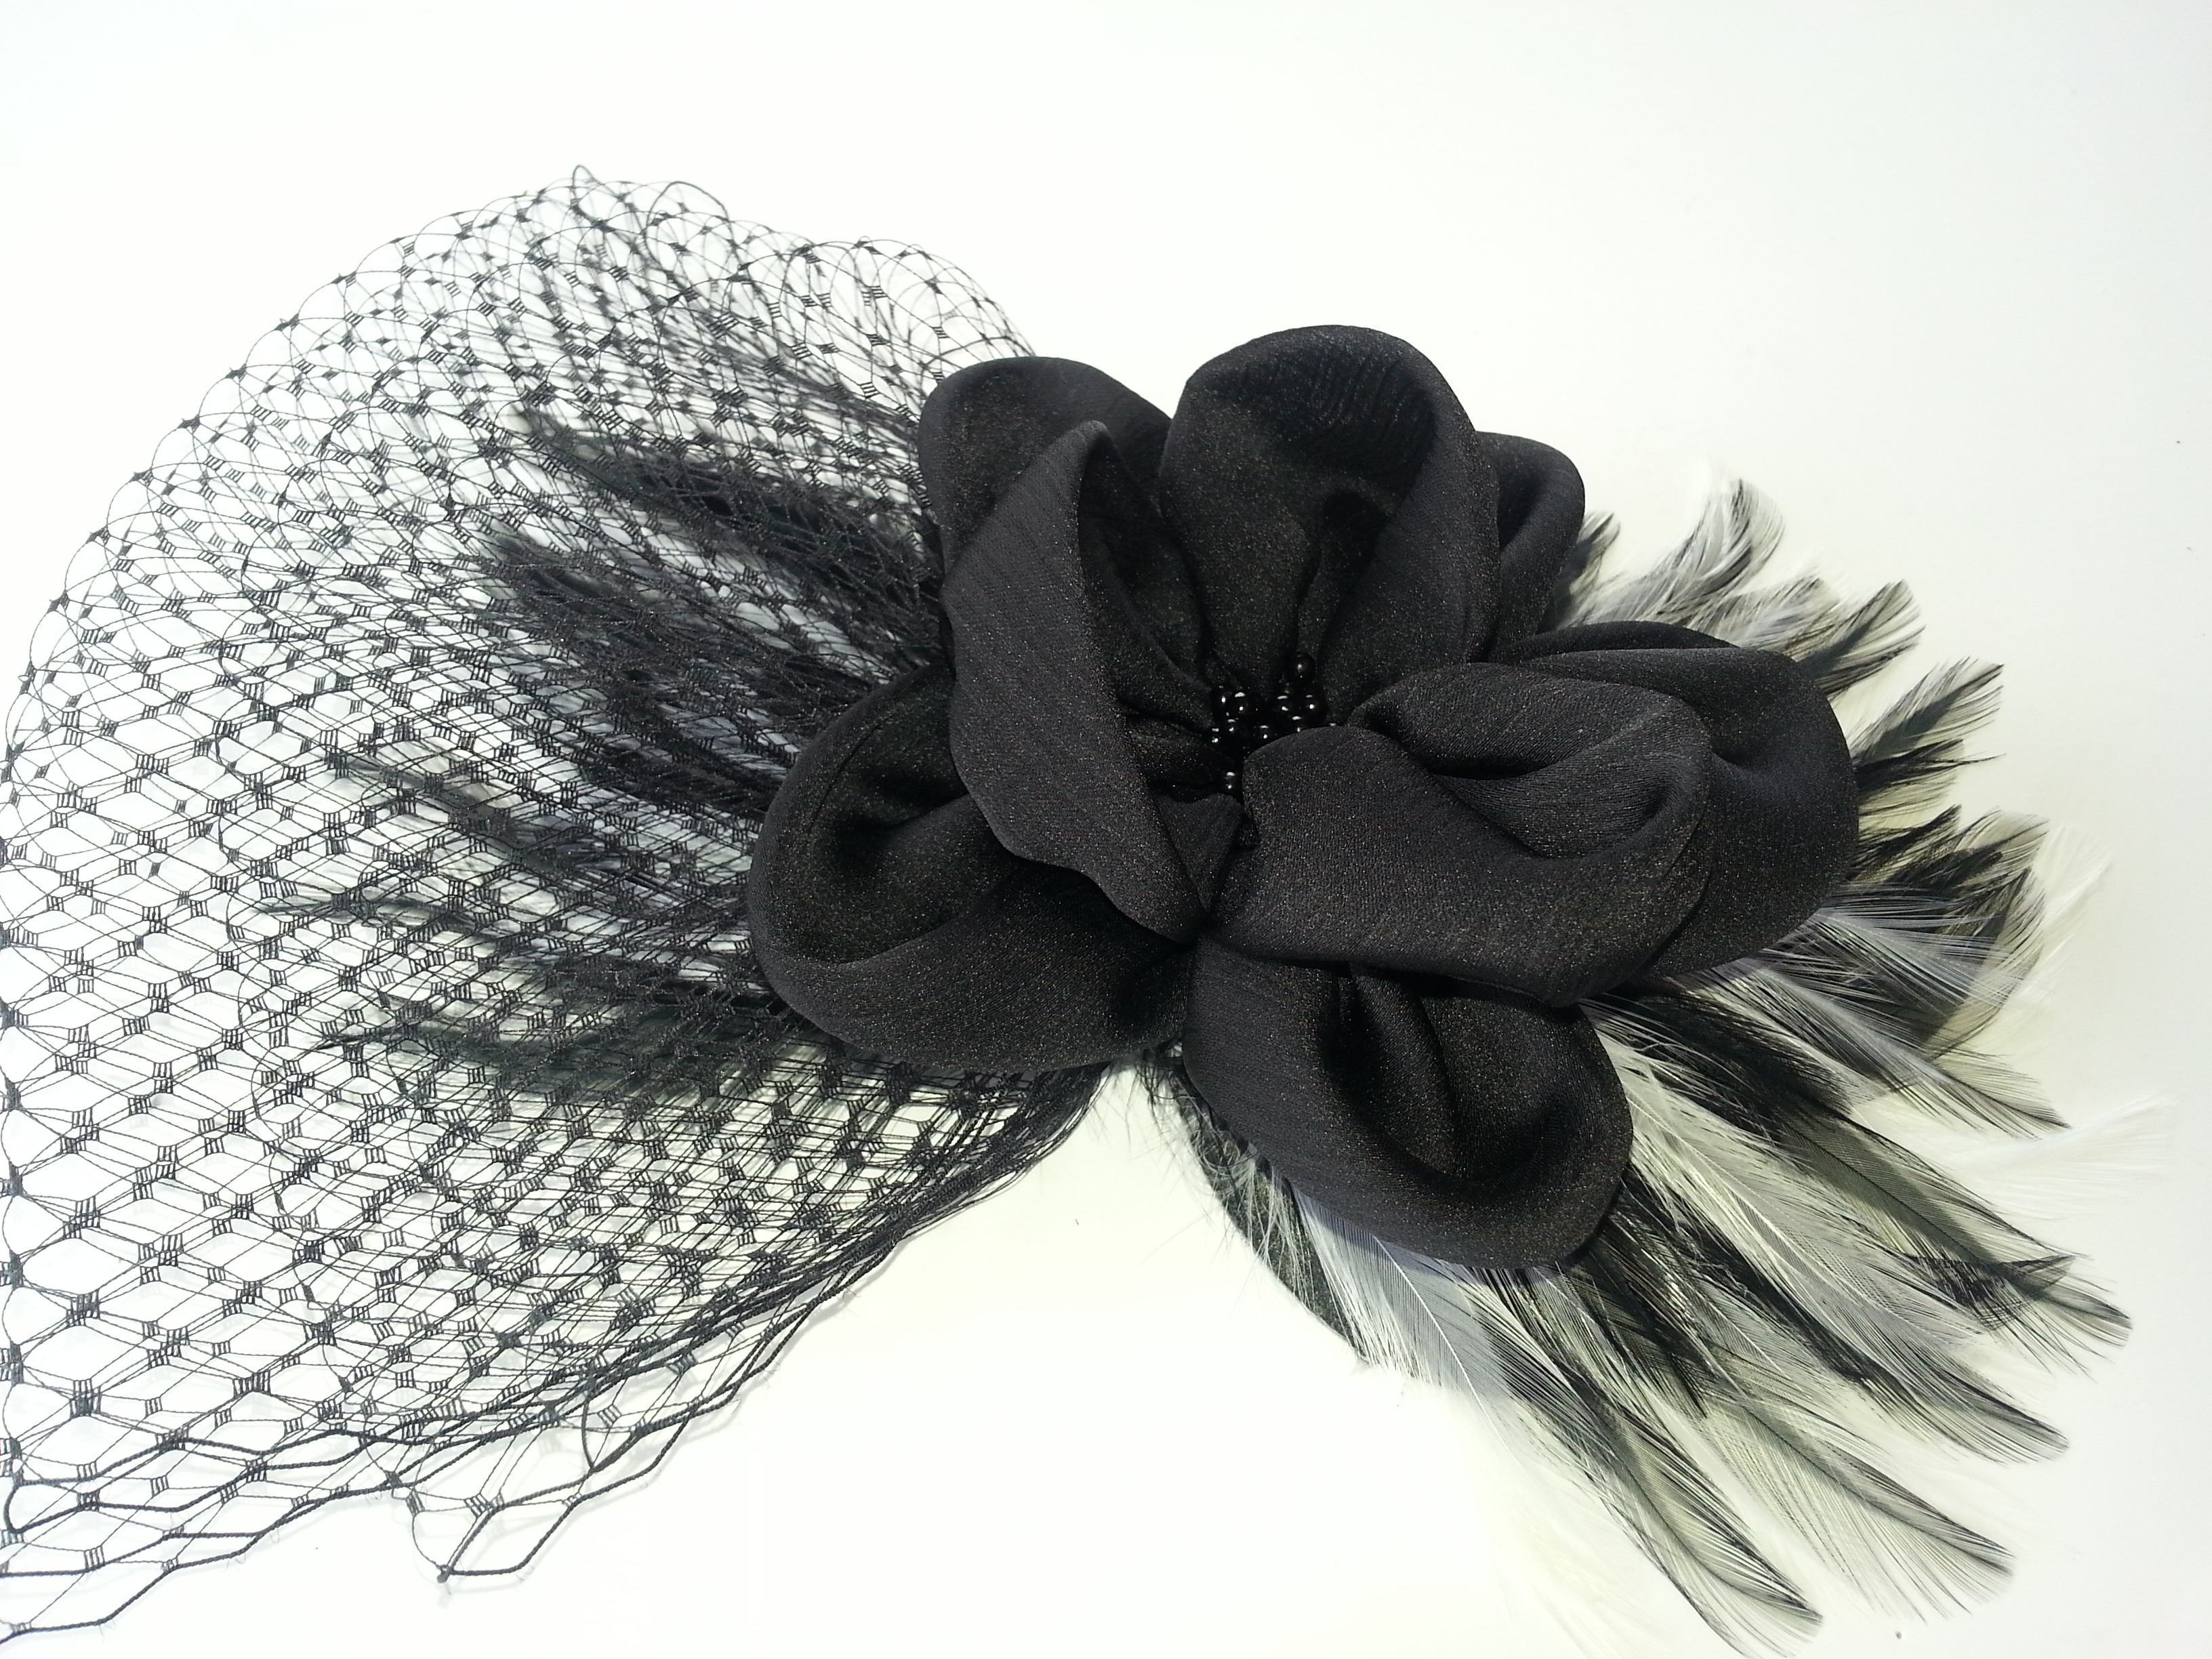 Clip flower pin through the center of the tulle and feathers.